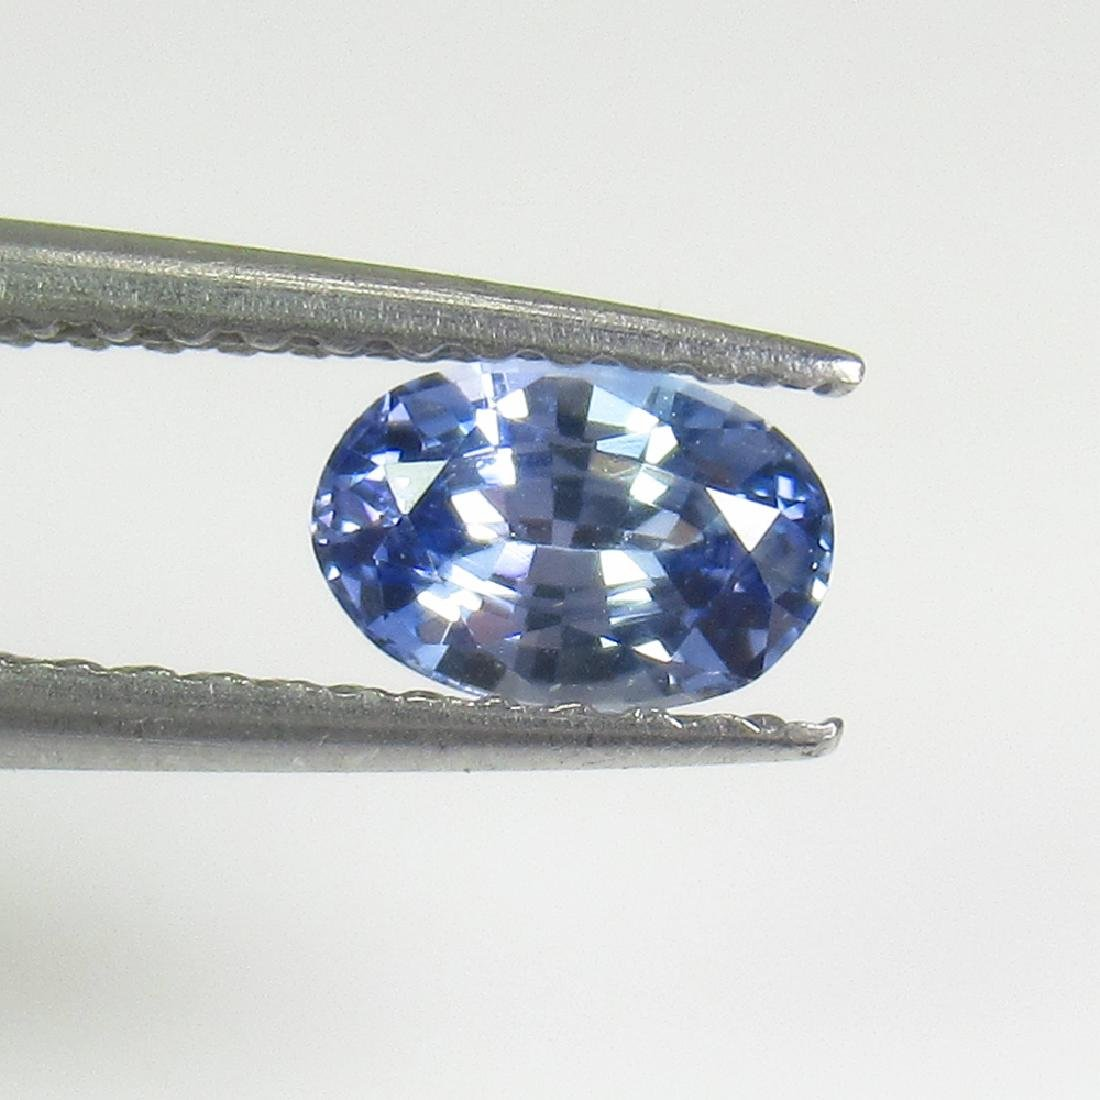 0.60 Ctw Natural Ceylon Brown Sapphire Oval Cut